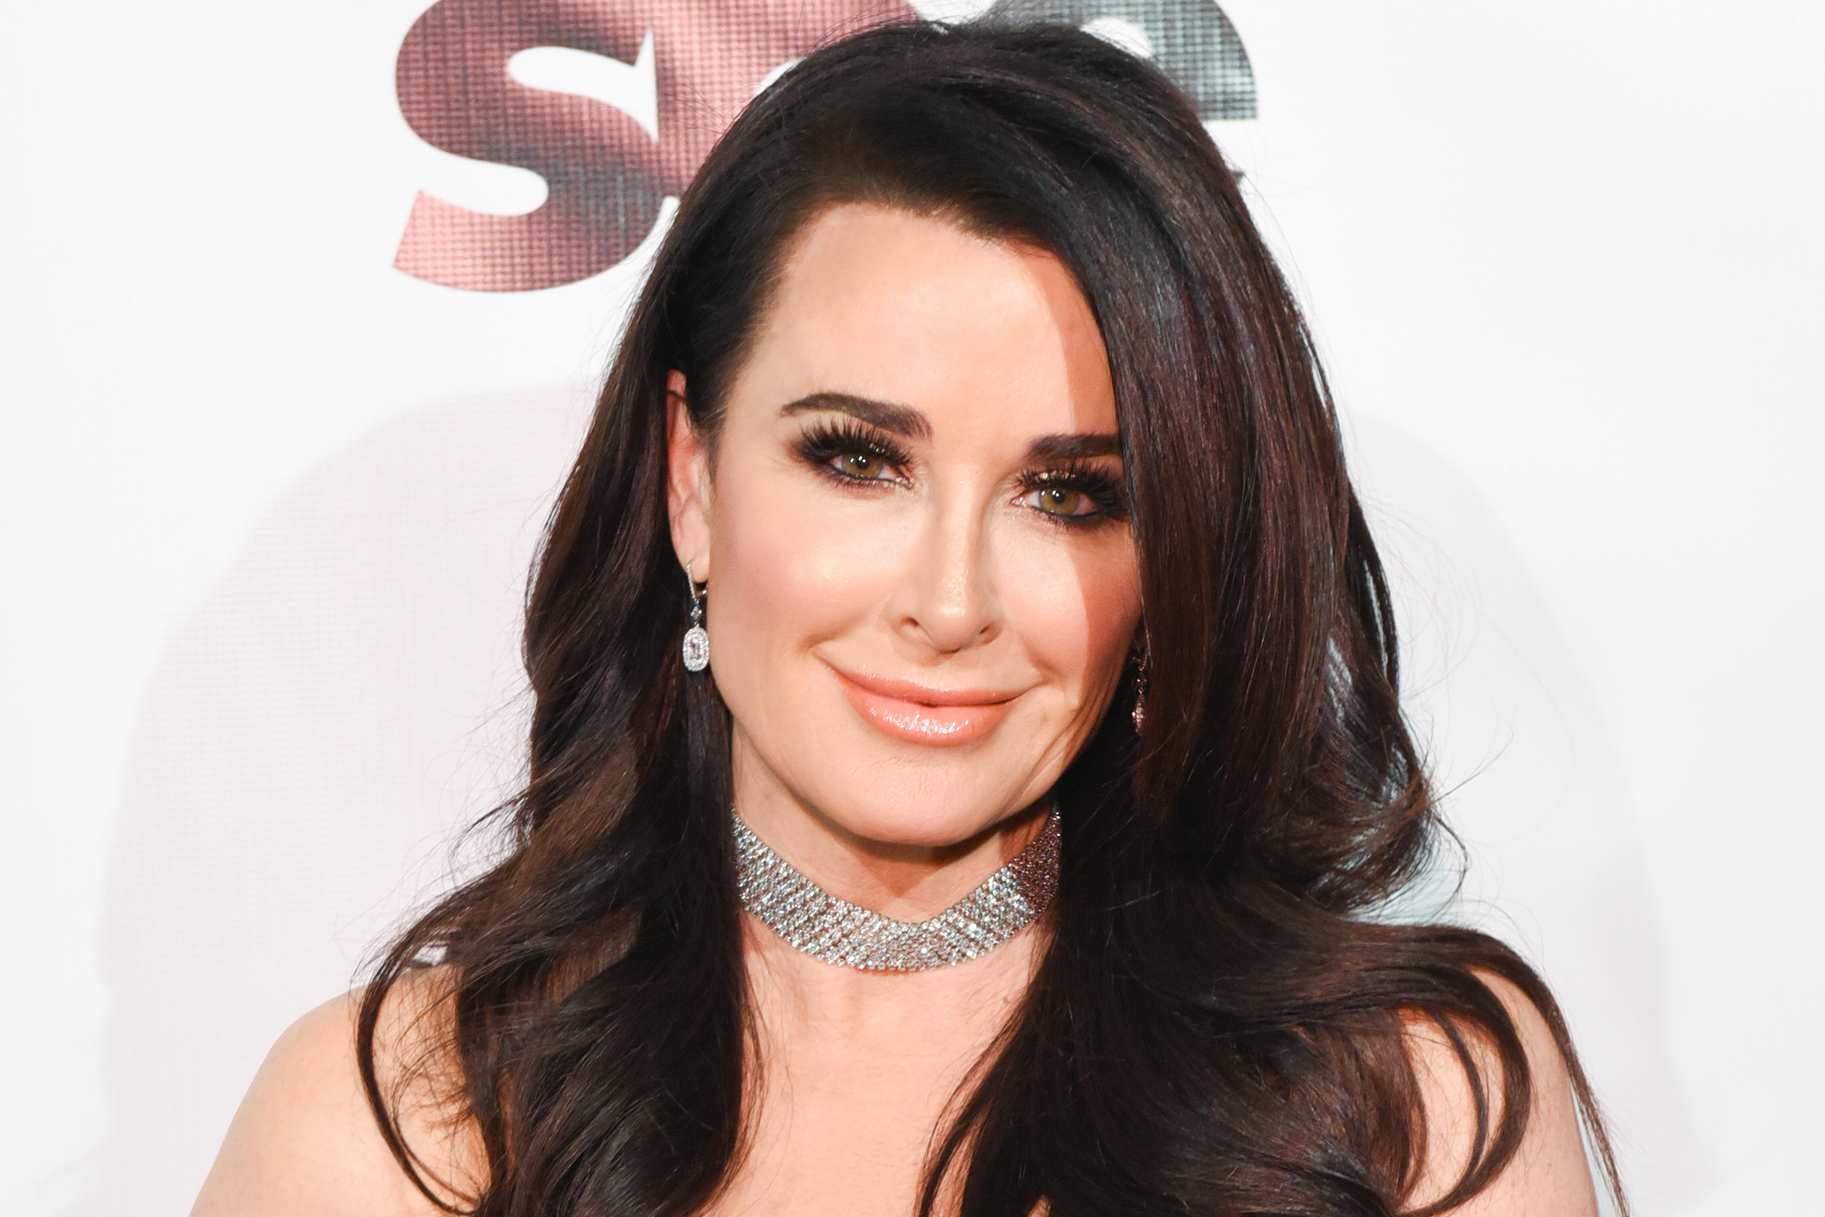 Kyle Richards Makeup Routine